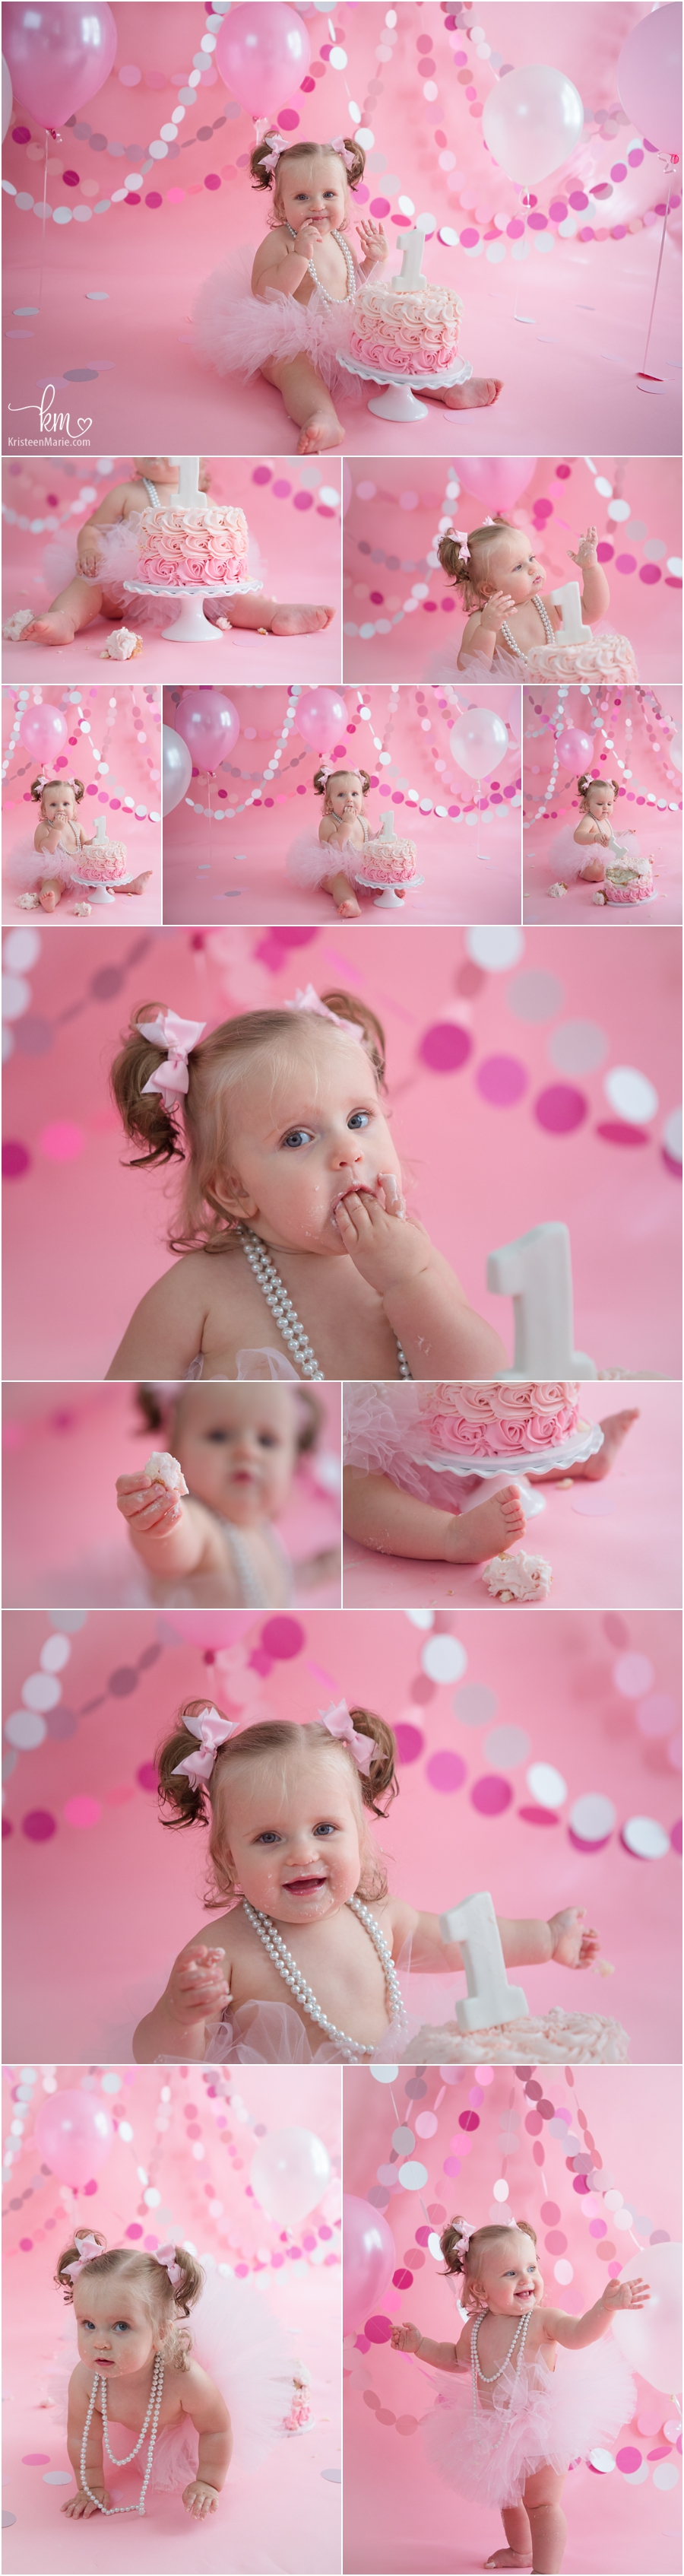 soft pink cake smash session for baby's first birthday